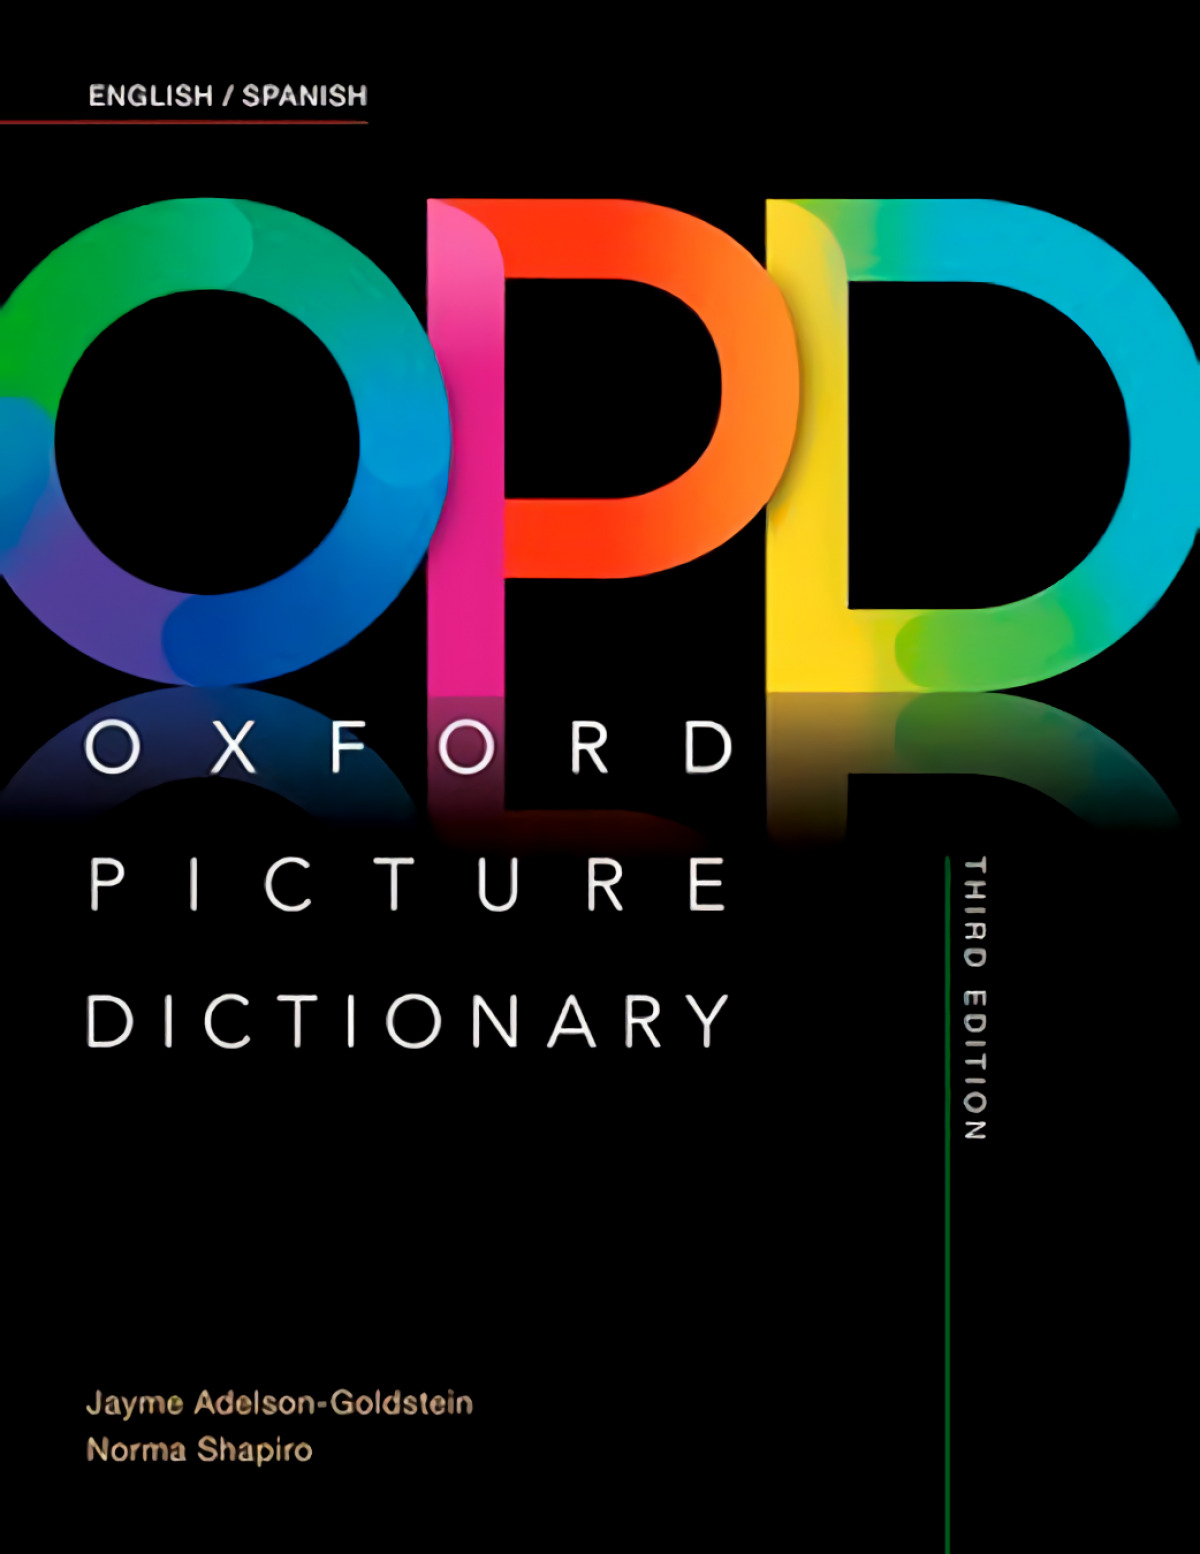 OXFORD PICTURE DICTIONARY ENGLISH SPANISH BILINGUAL